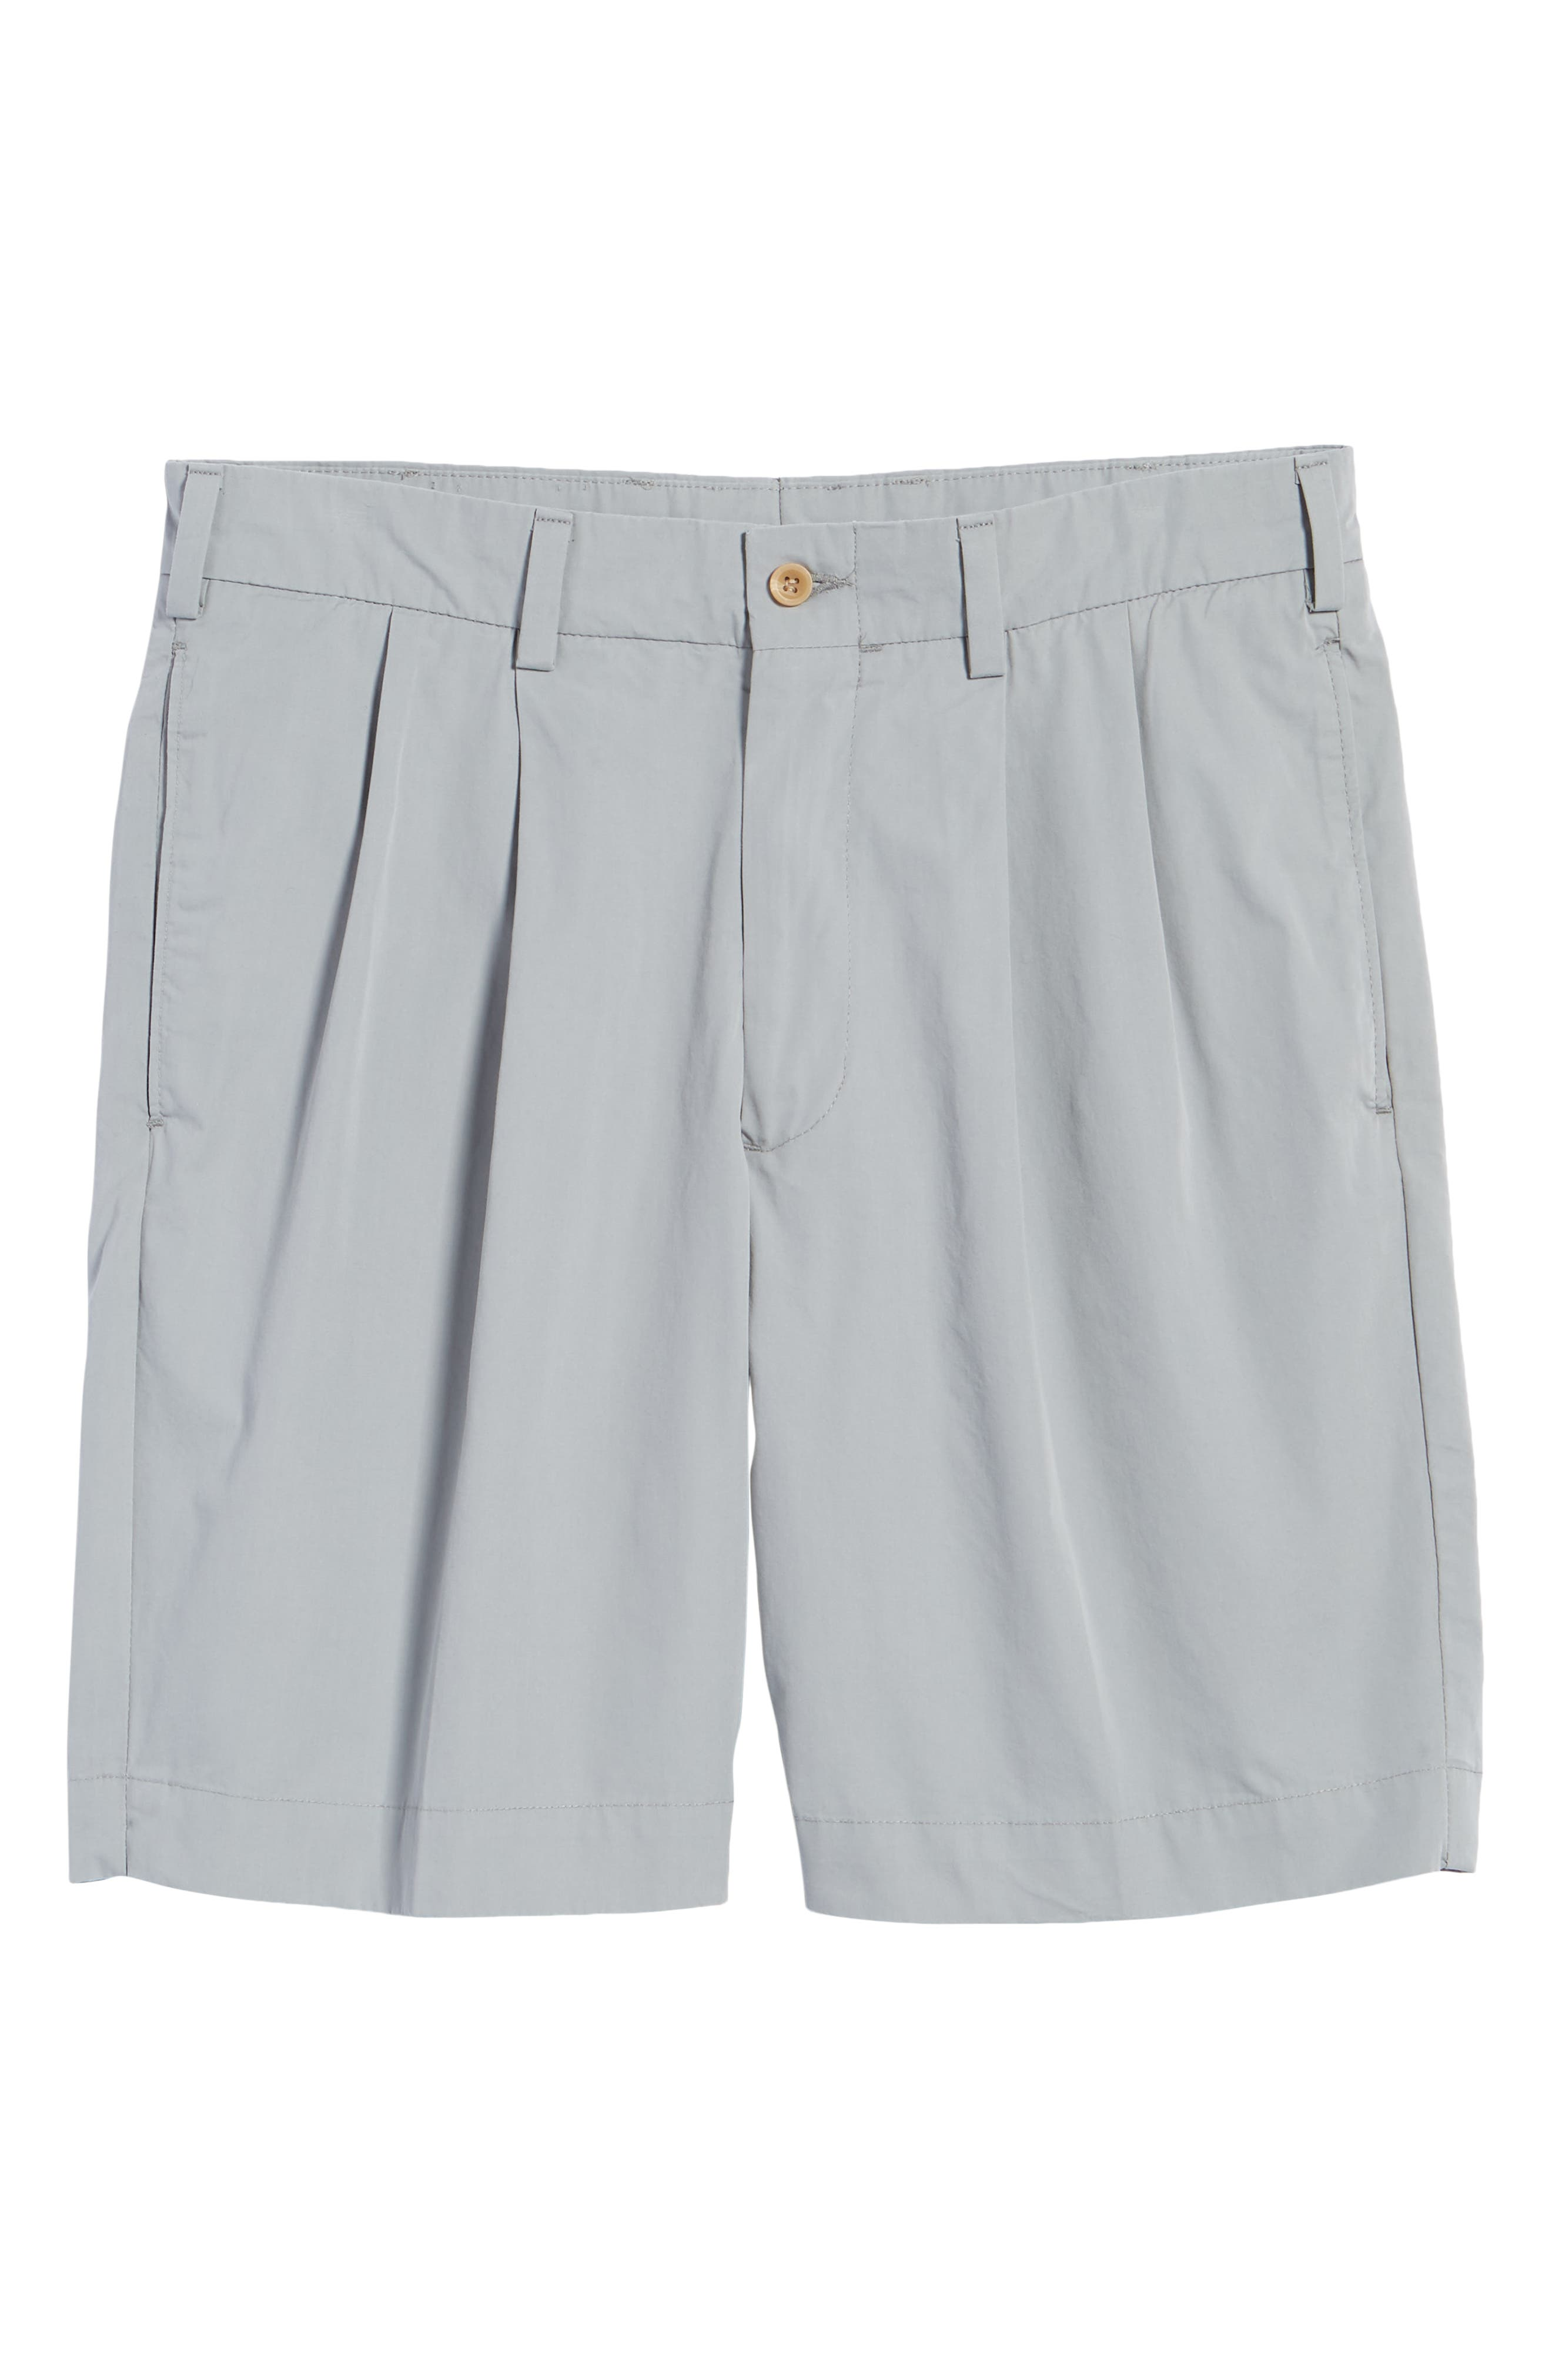 M2 Classic Fit Pleated Tropical Cotton Poplin Shorts,                             Alternate thumbnail 6, color,                             Nickel